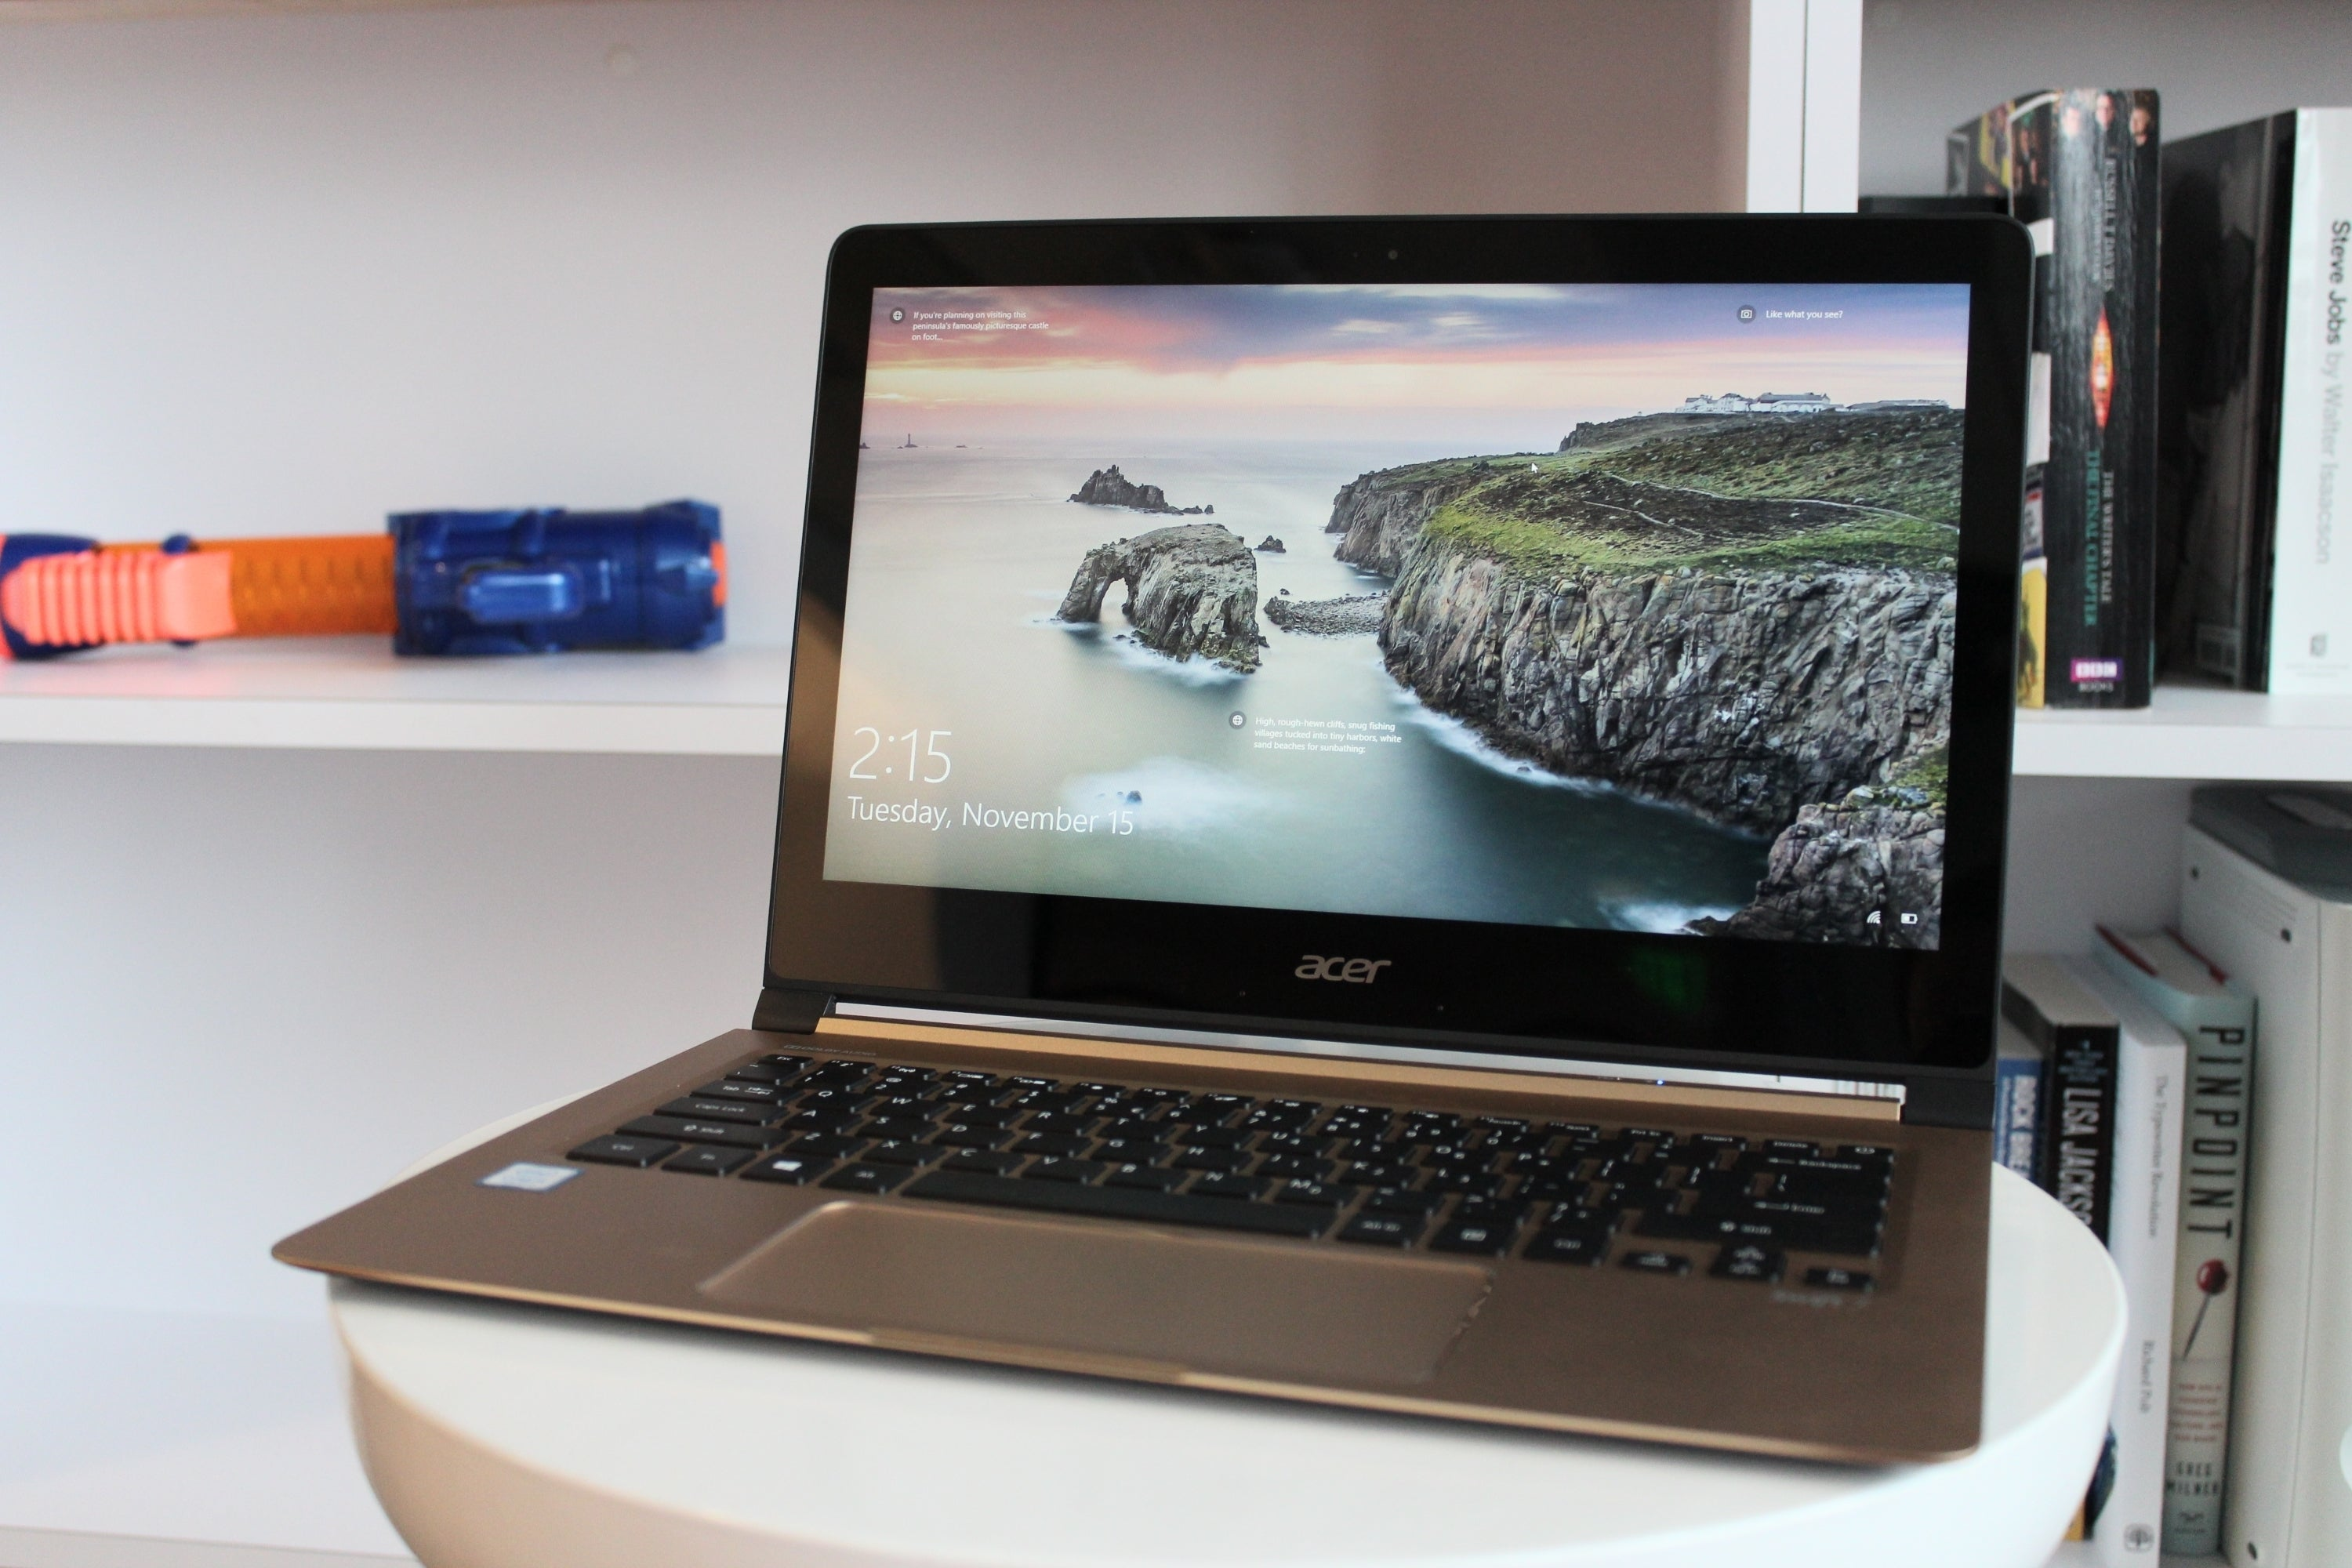 Notebook samsung cena - Acer Swift 7 Review The World S Thinnest Laptop Is Starving For Power Pcworld